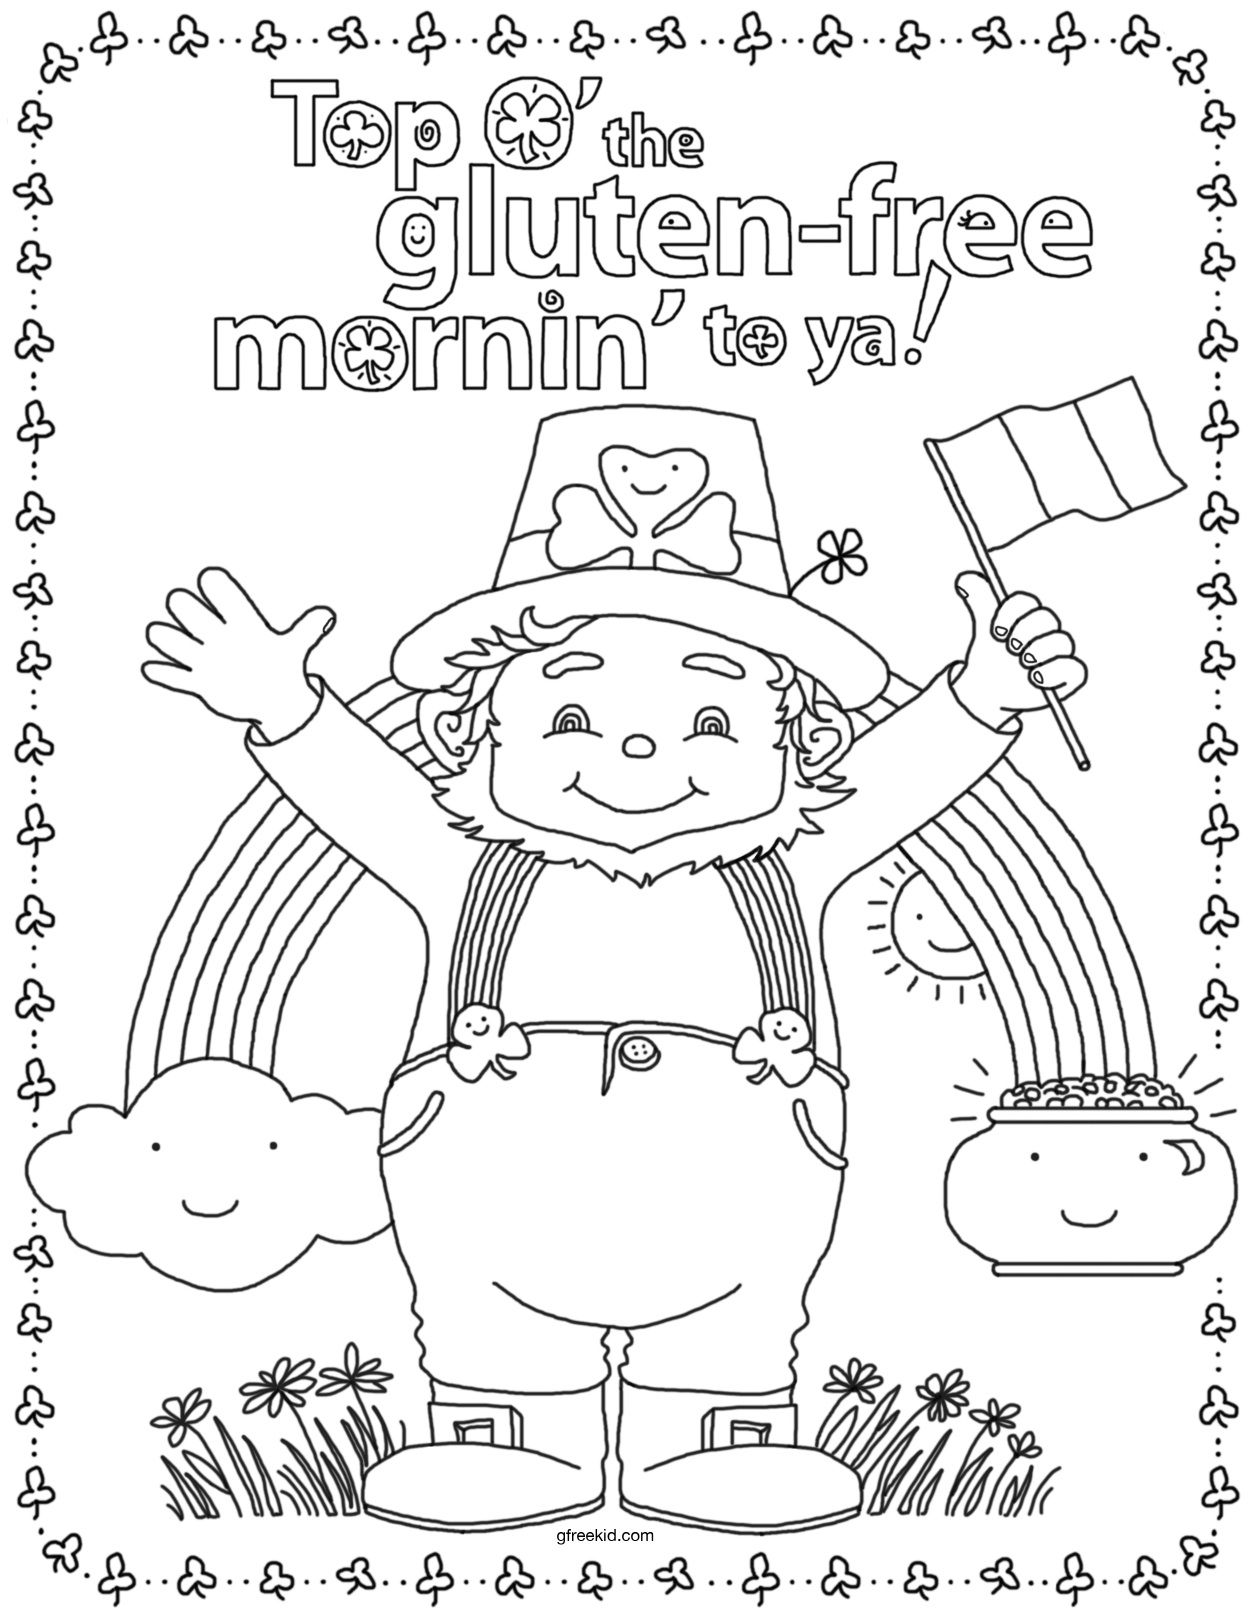 Coloring Page G Free Kid Coloring Pages Coloring Pages Inspirational Online Coloring Pages [ 1618 x 1253 Pixel ]